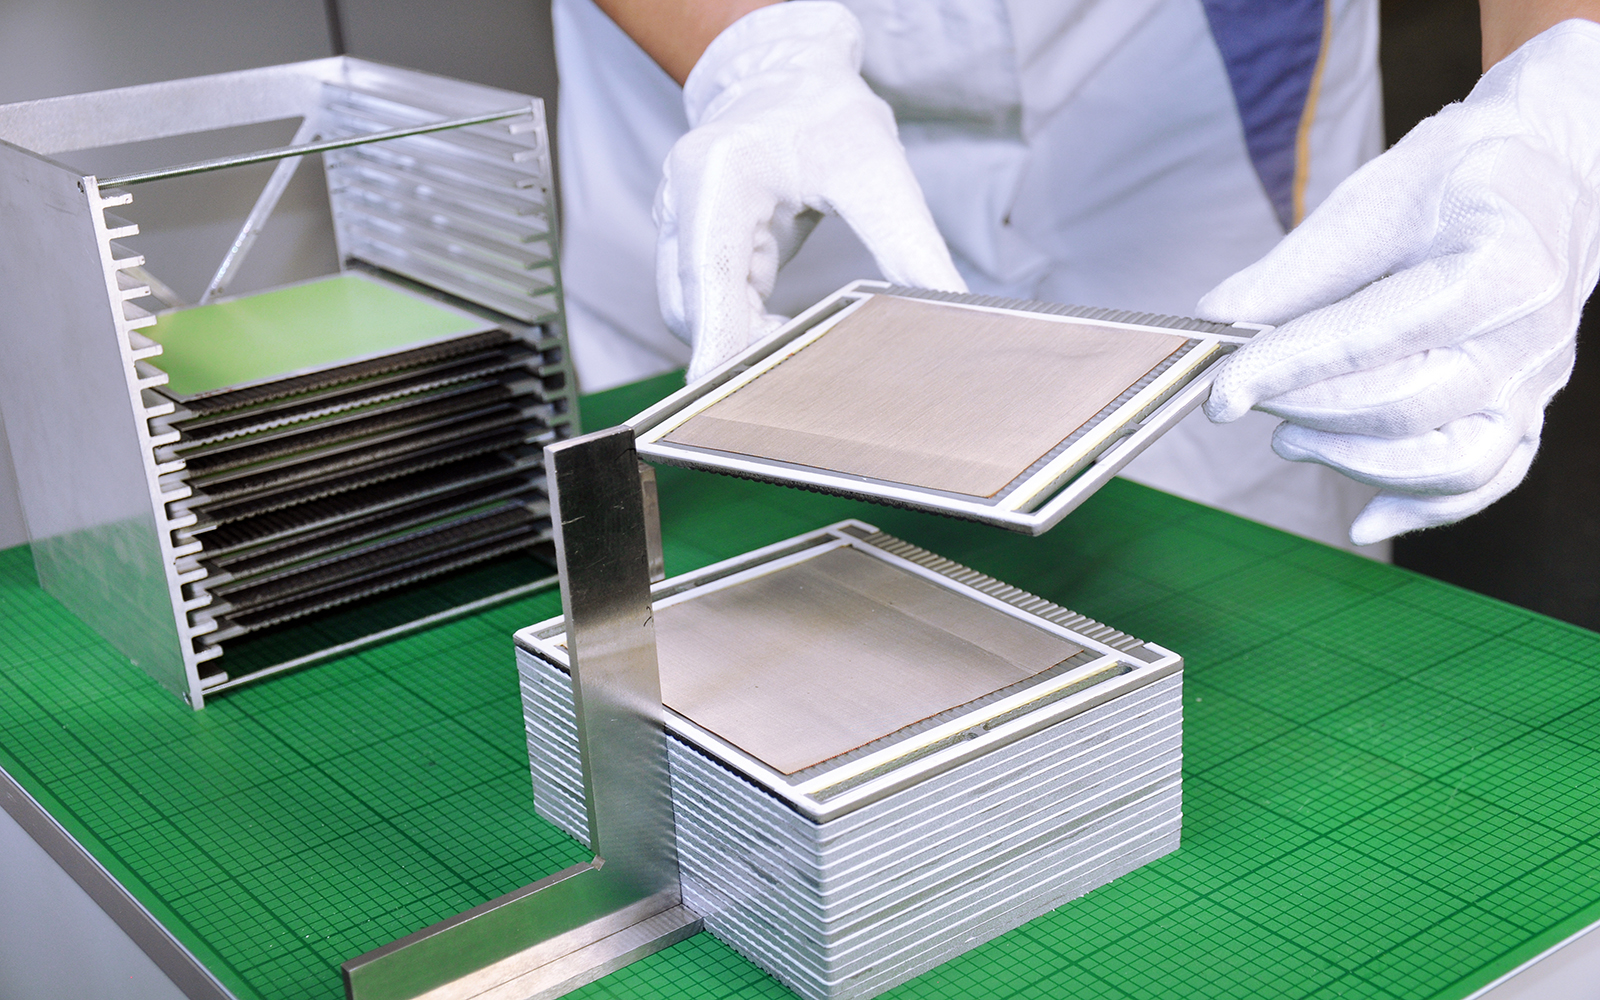 Fraunhofer developing fuel cell system to power the home